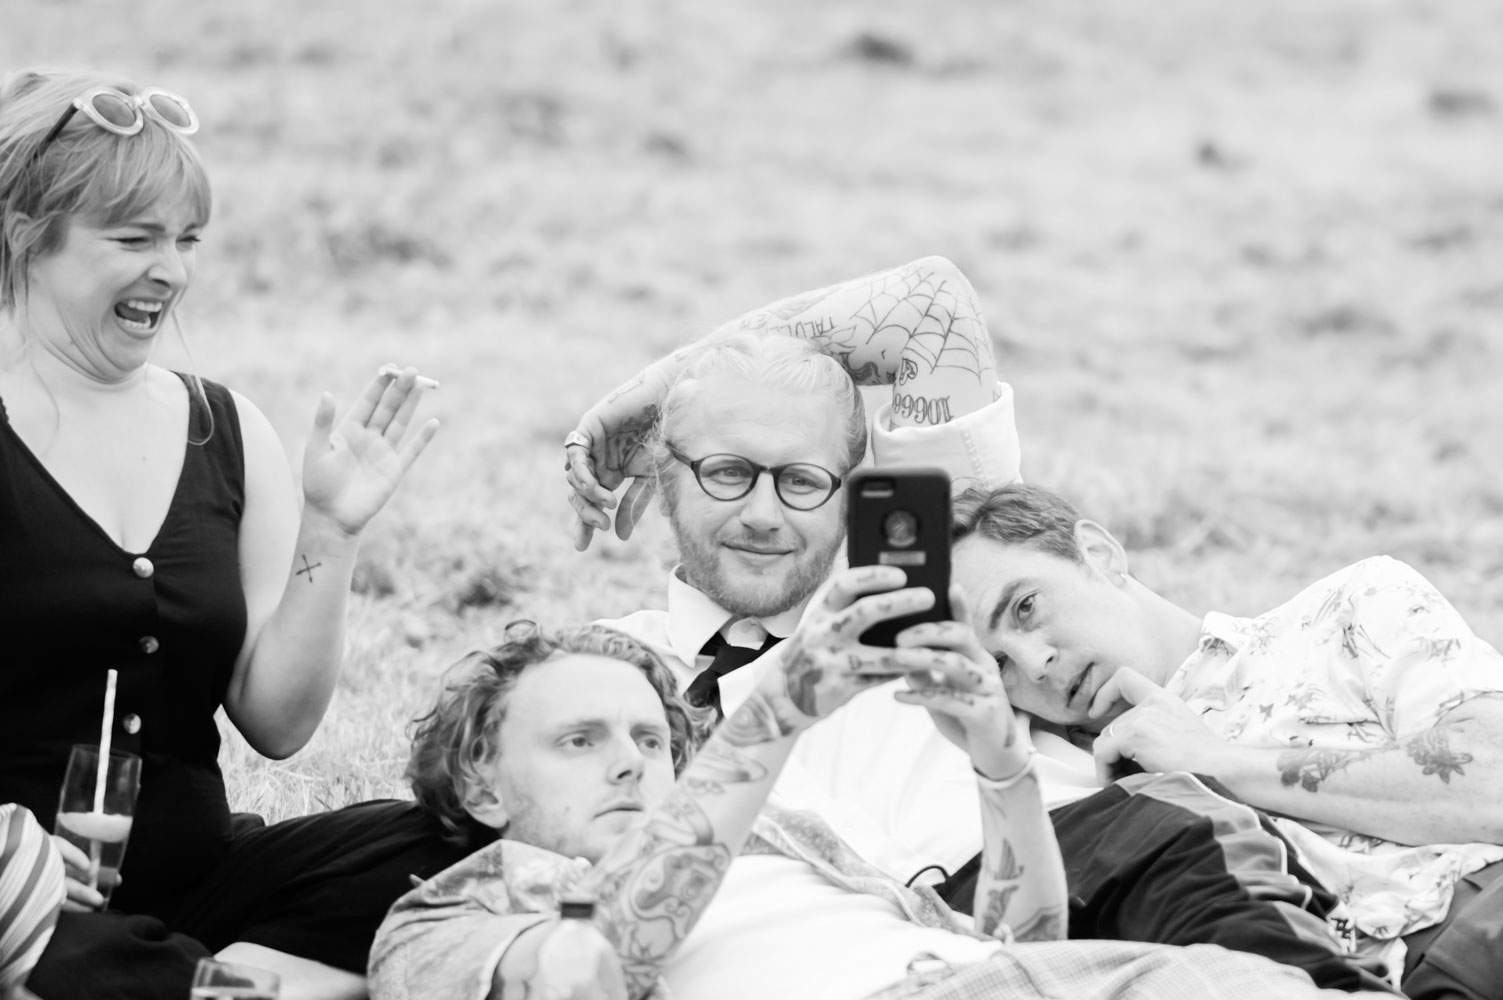 Relaxed wedding guests looking at a phone by alternative sussex wedding photographer James Robertshaw